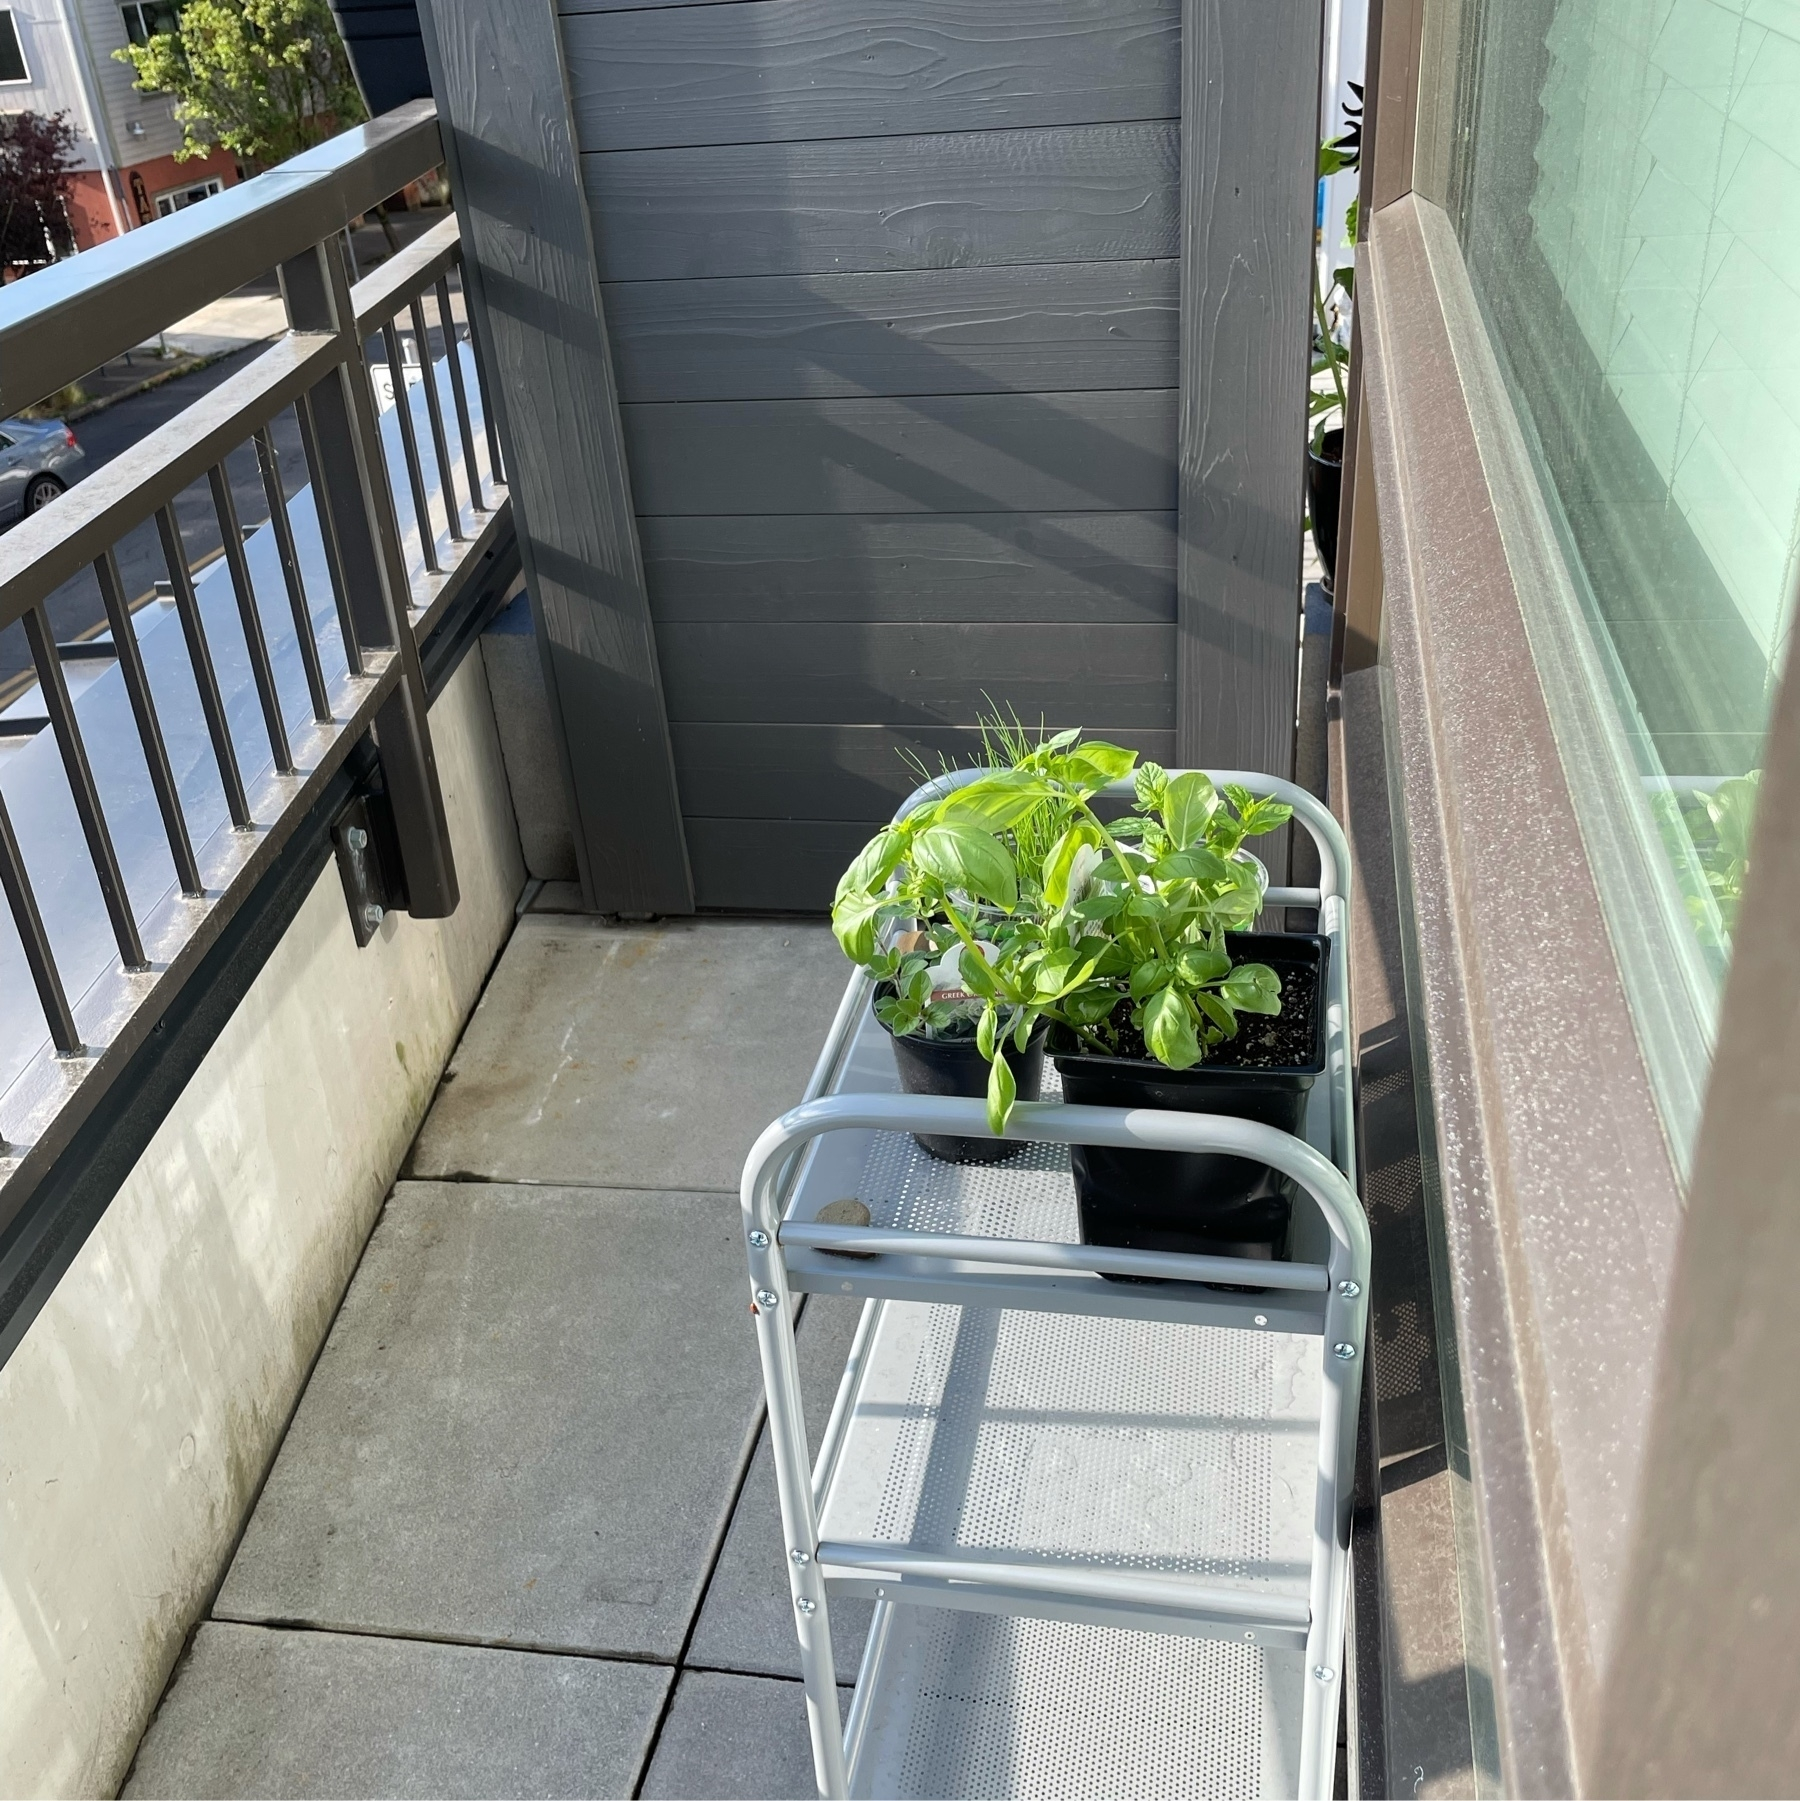 Herb planter on a balcony